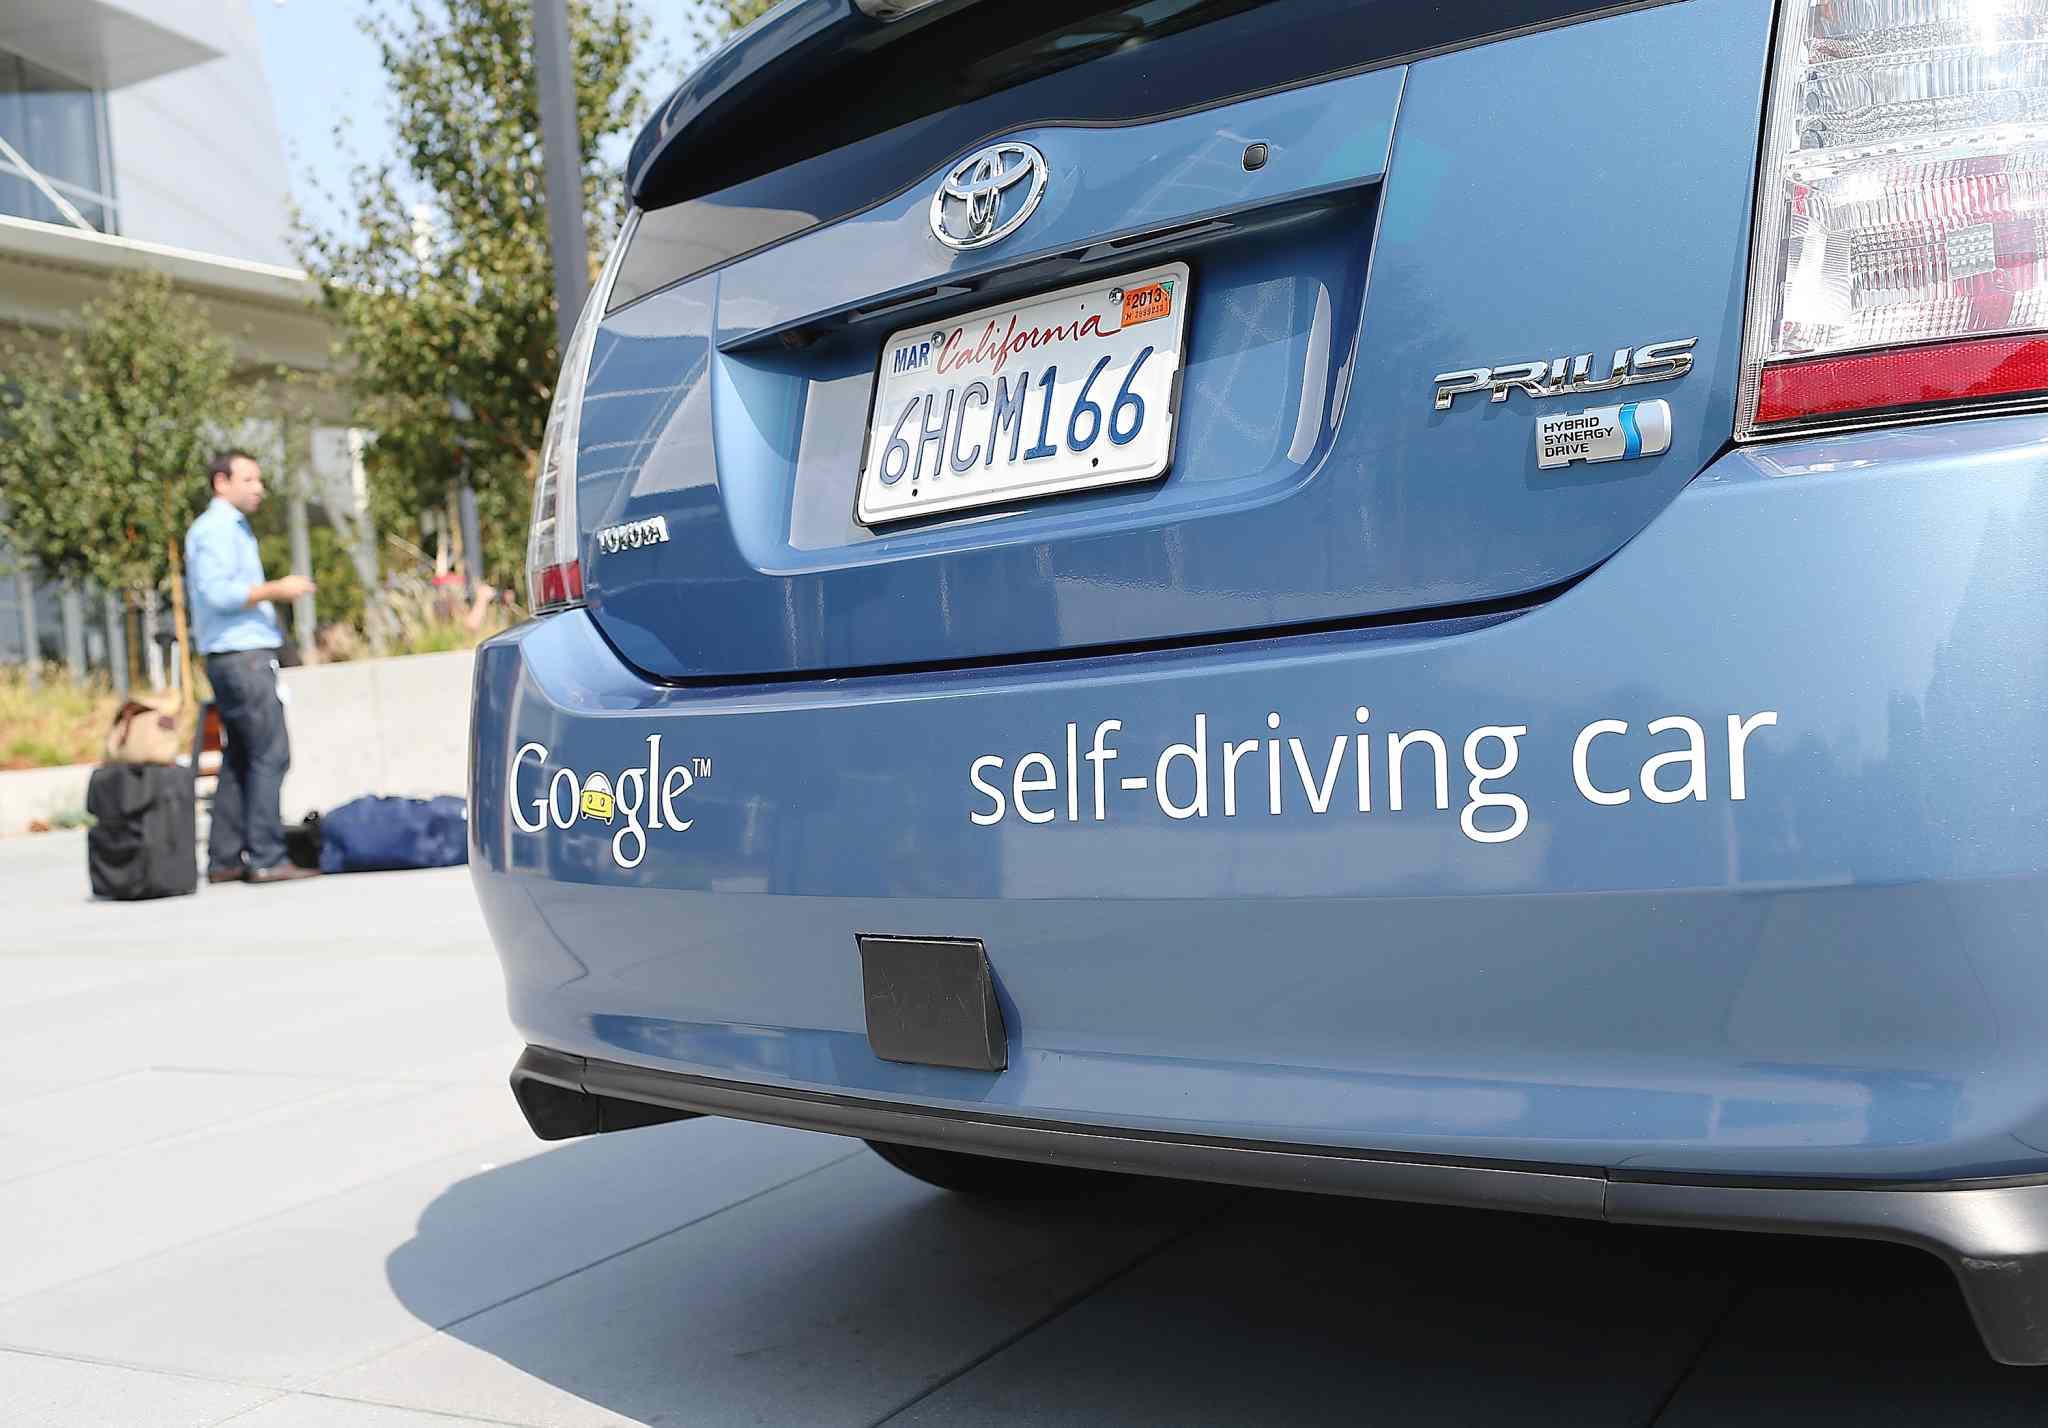 Google has been testing driverless cars near its headquarters in Mountain View, Calif.The company's self-driving project began in 2009.